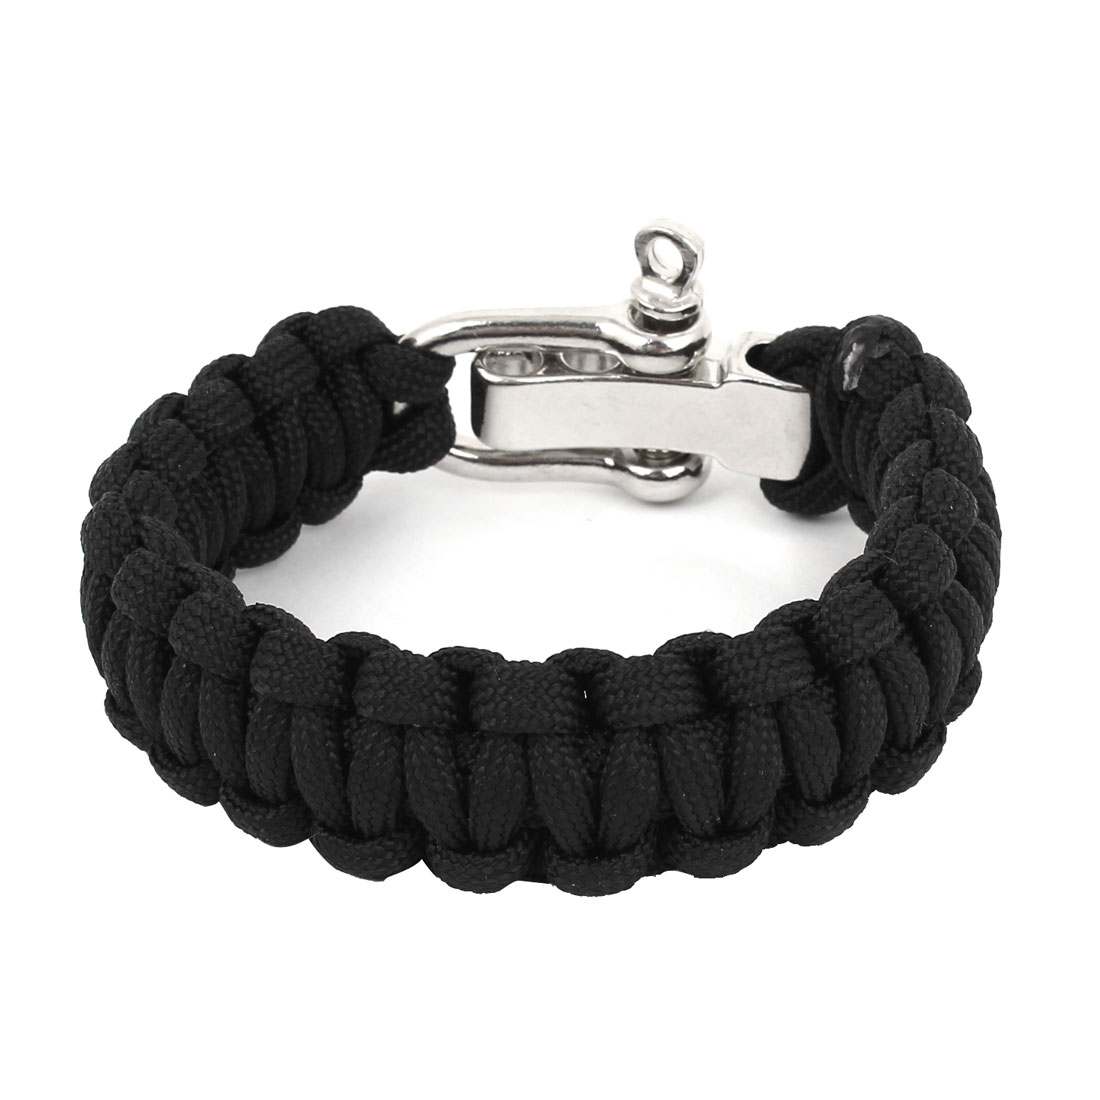 Black Nylon Quick Release Weave Cord Survival Bracelet Shackle Camping Kits